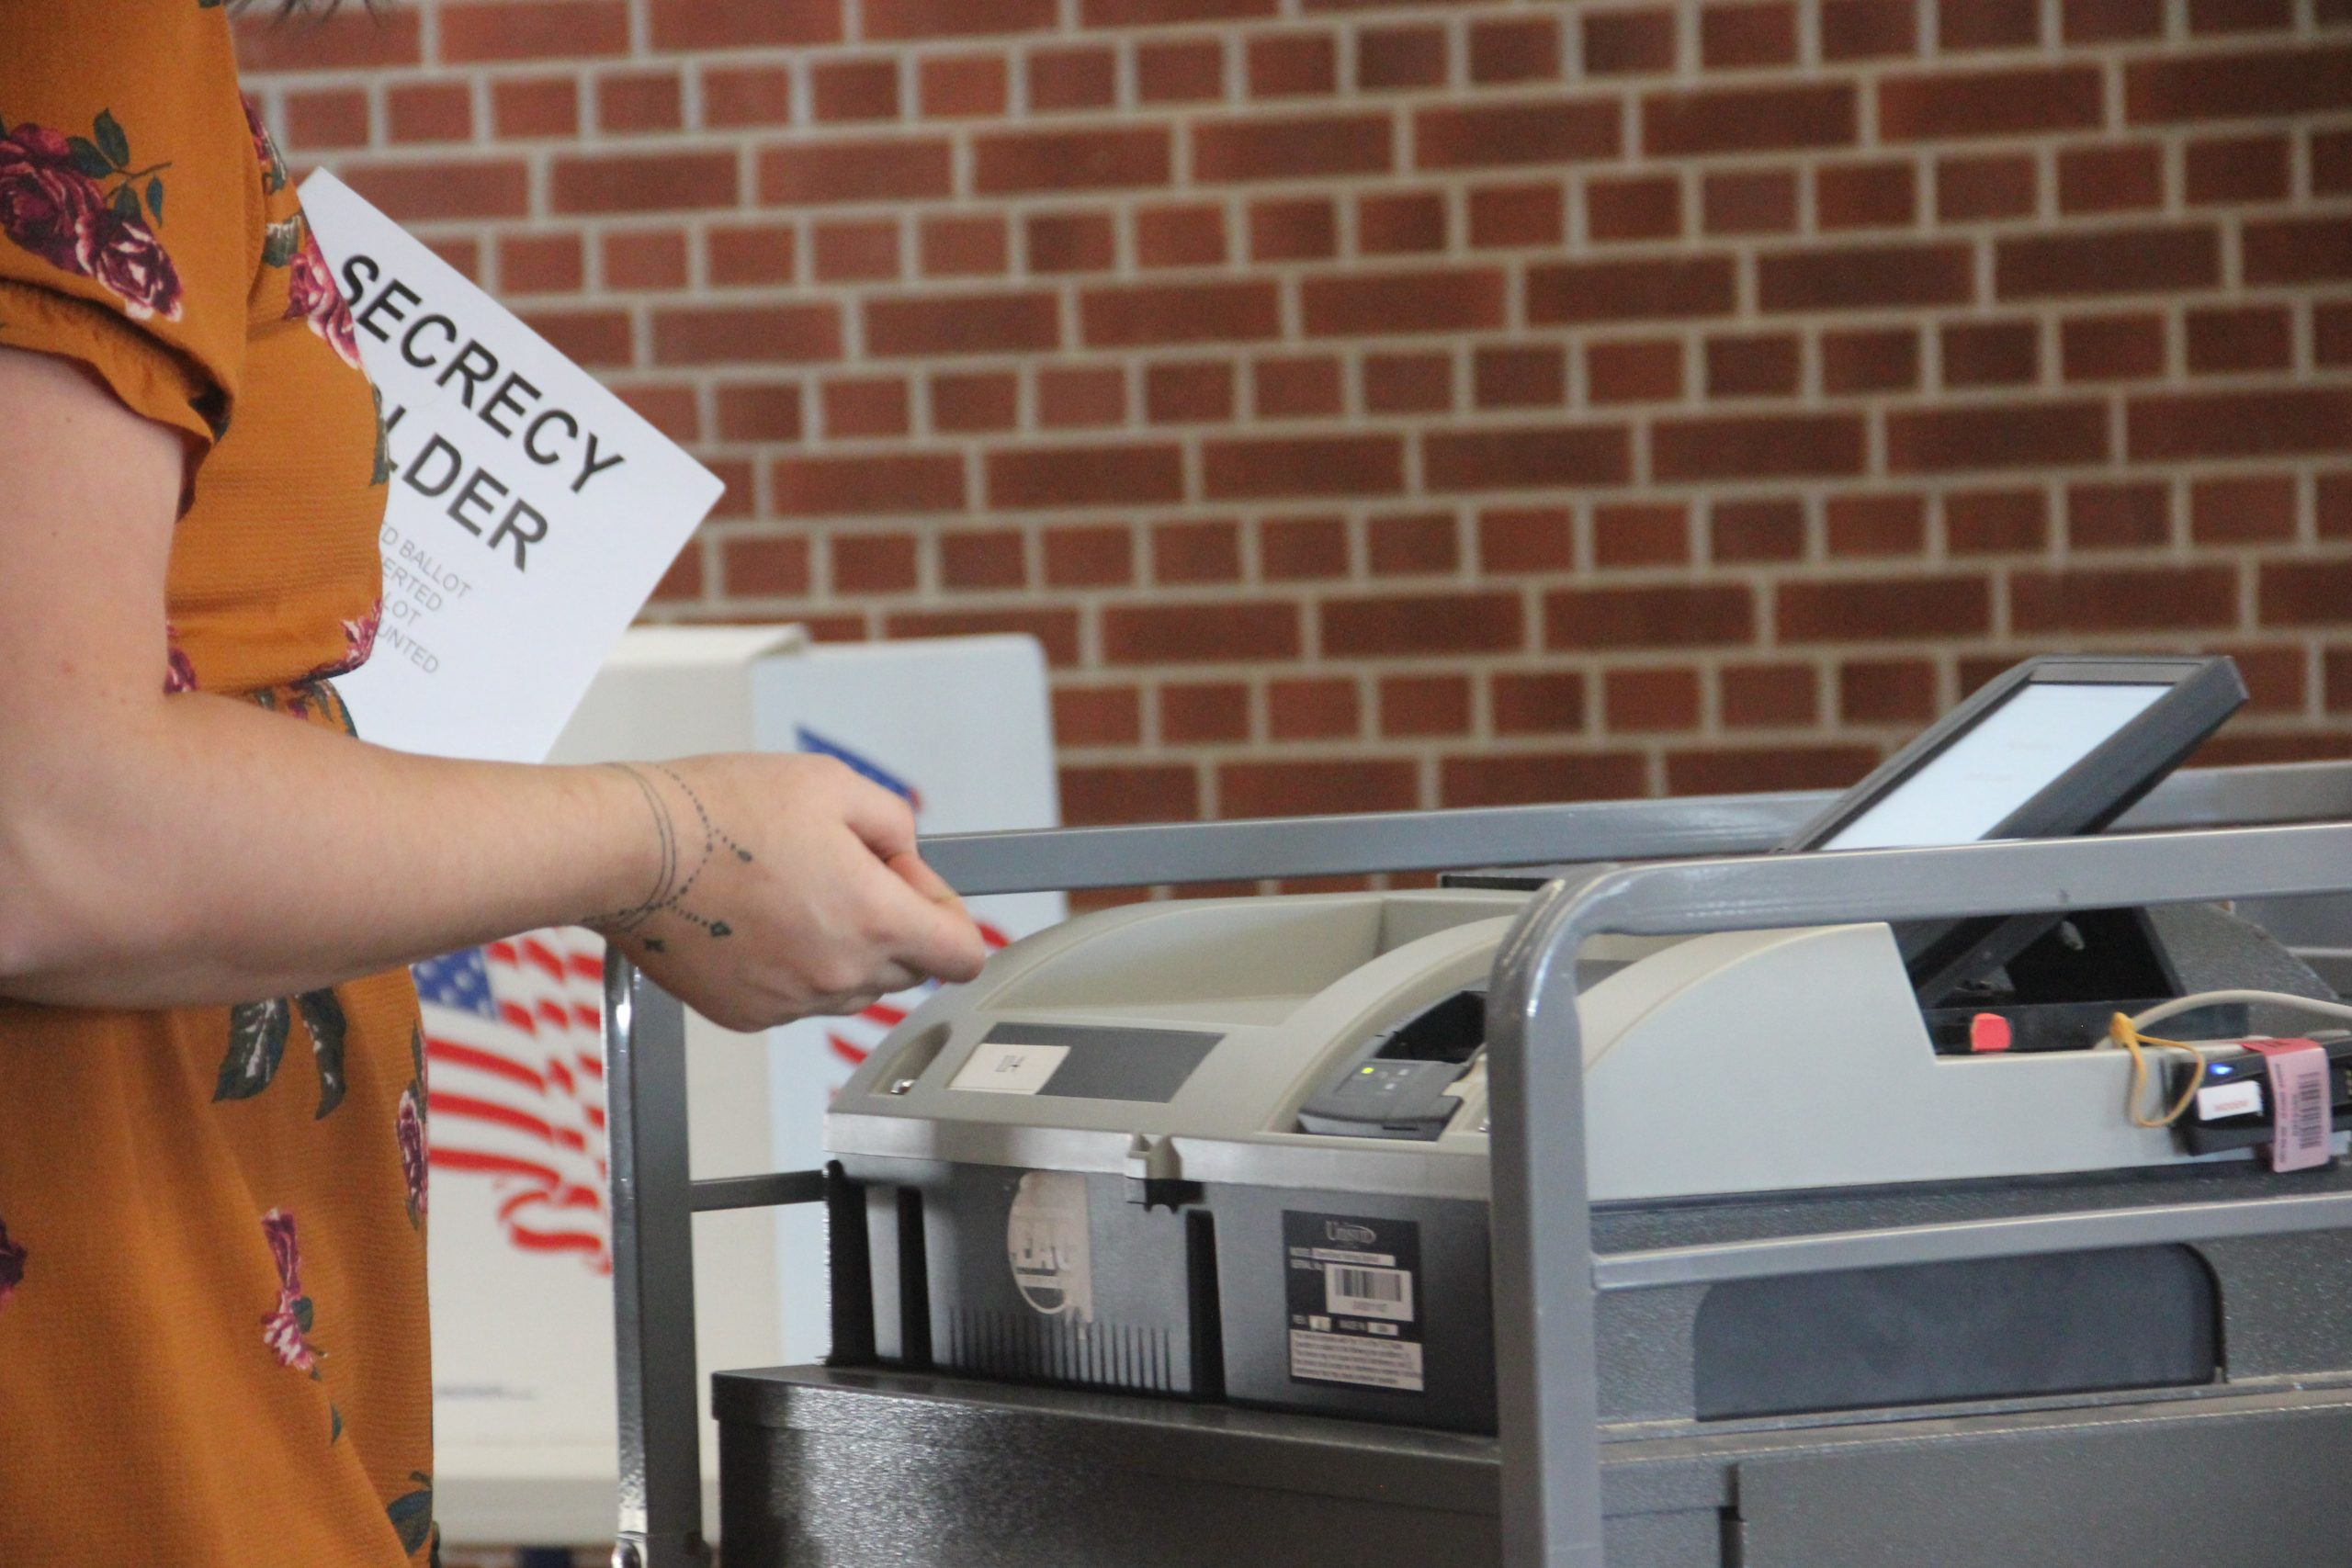 Advocates press for action in Congress on voting rights, despite grim outlook